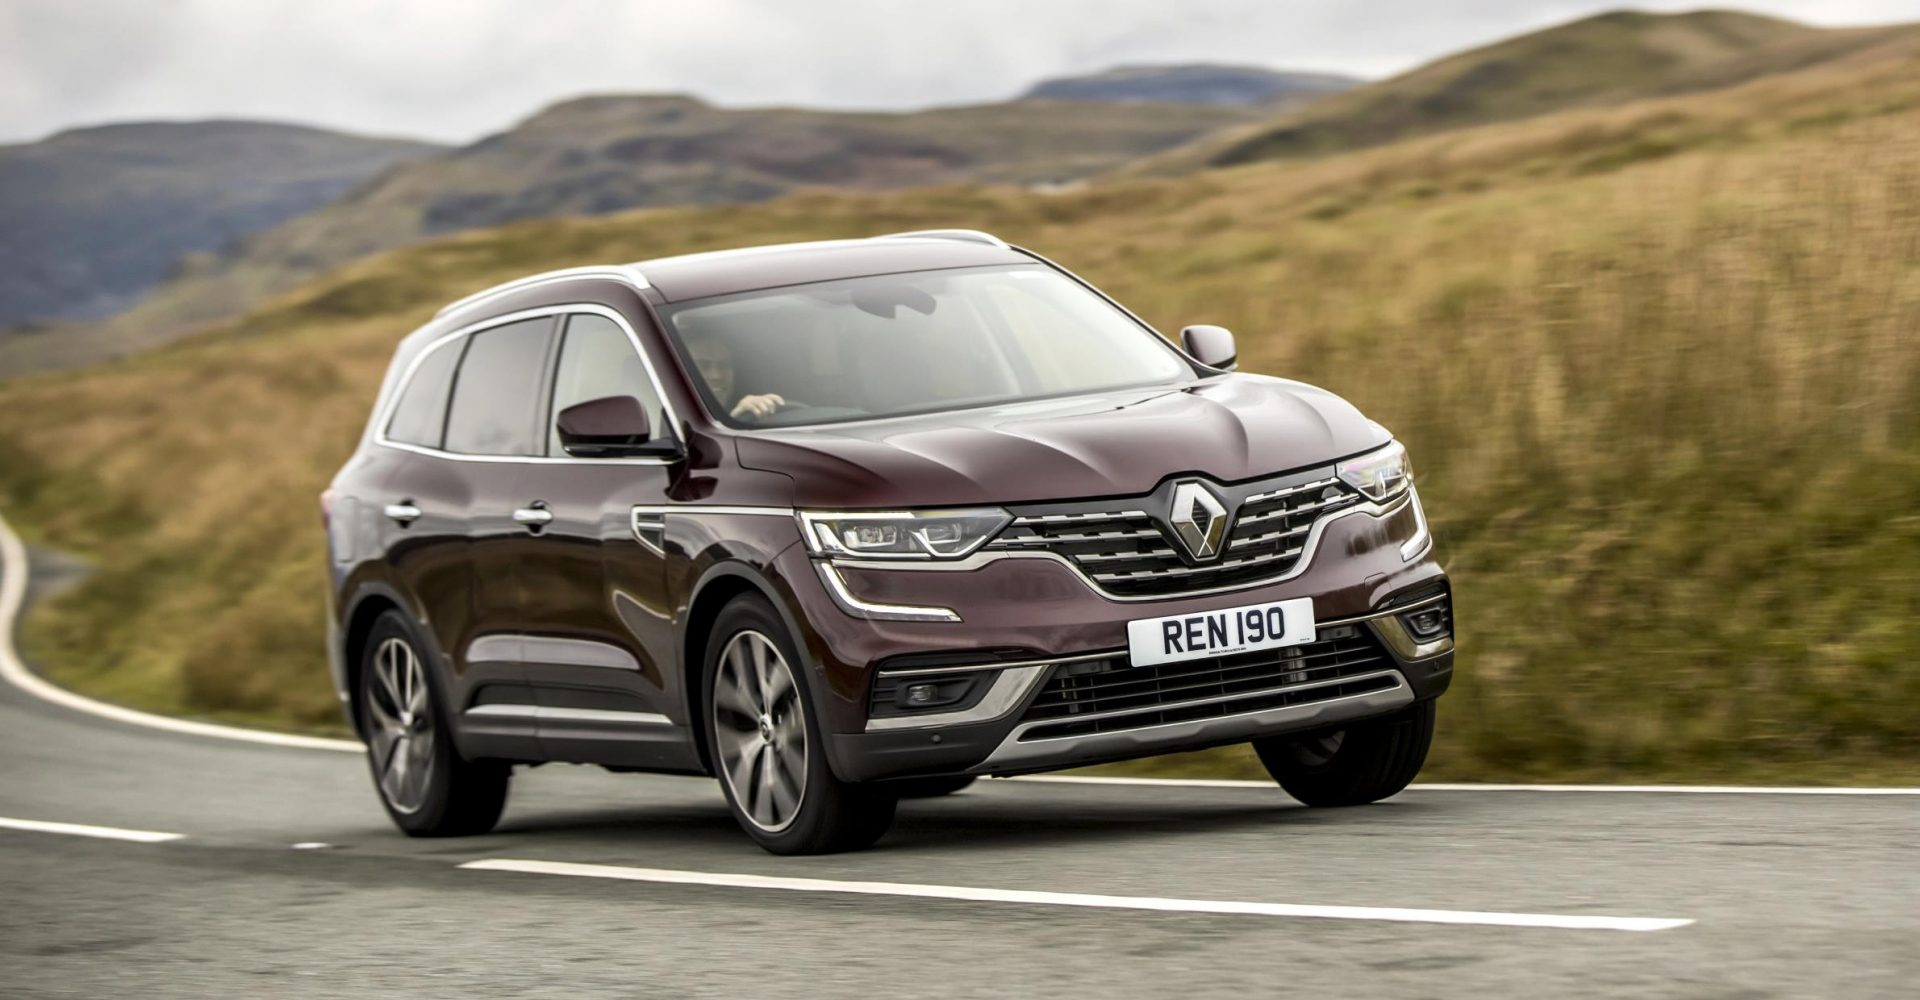 Koleos axed from Renault's UK line-up